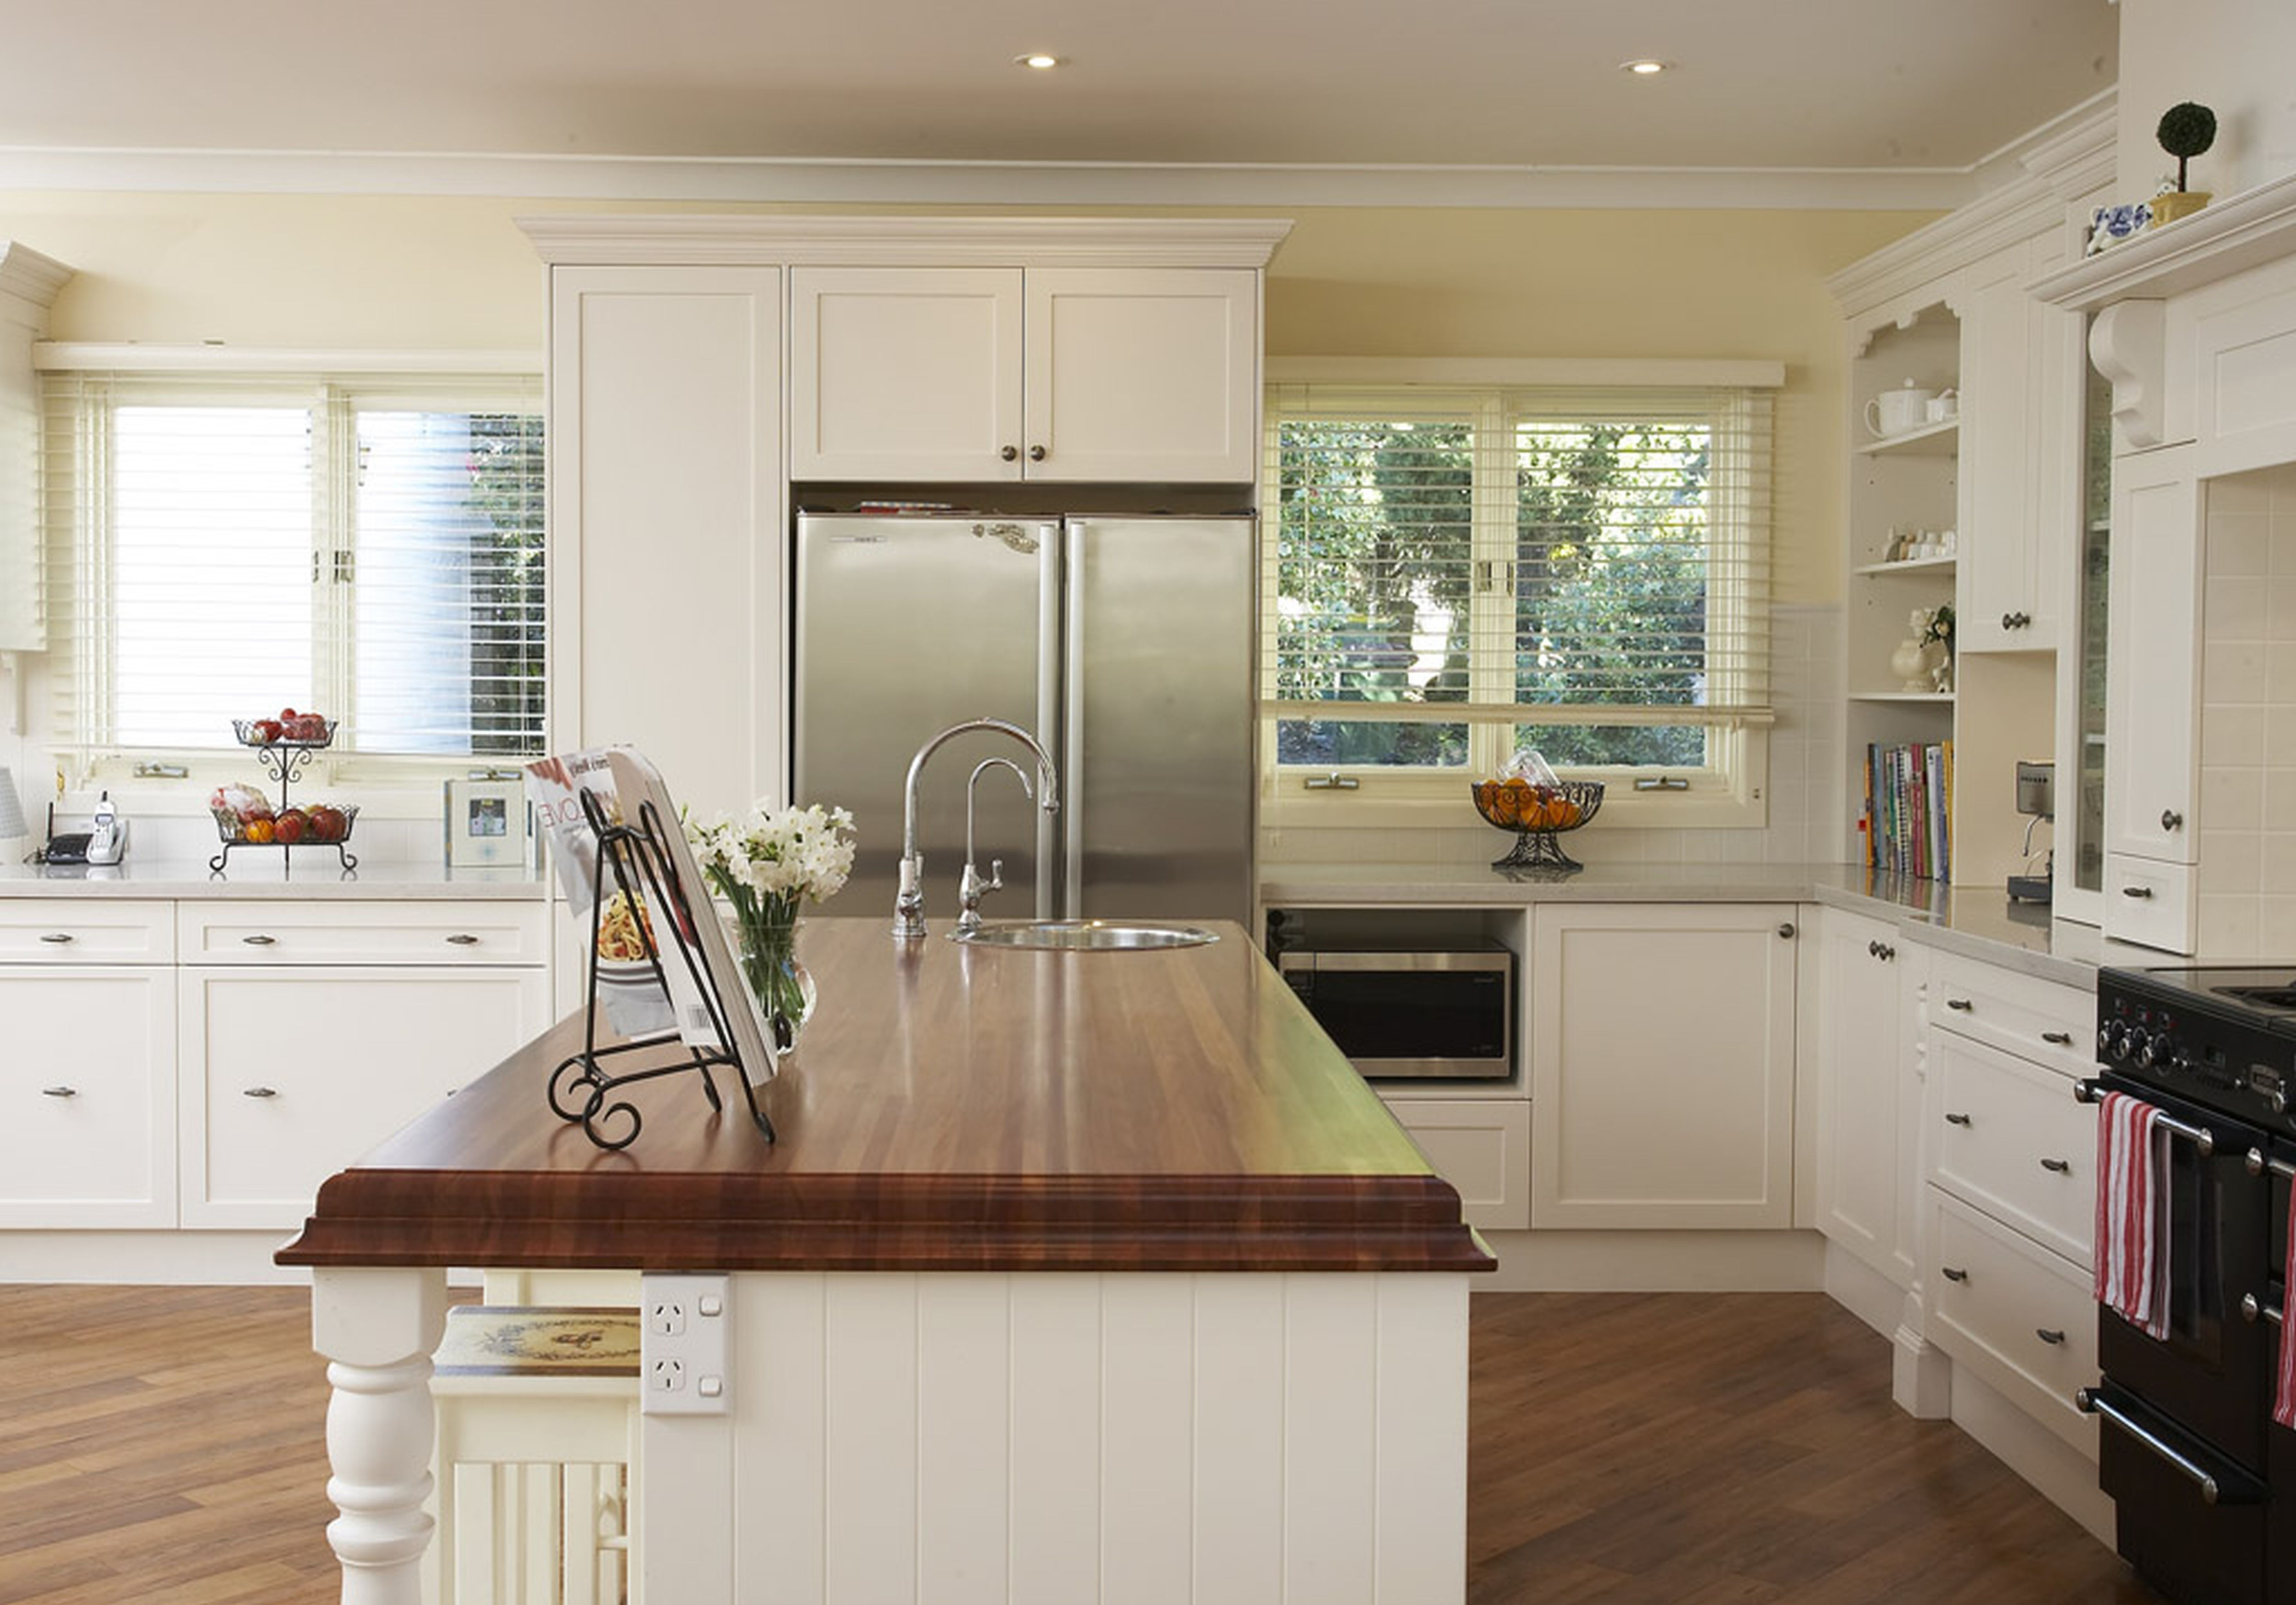 Best Of Design Your Own Kitchen Cabinets Online Free – The Most ...